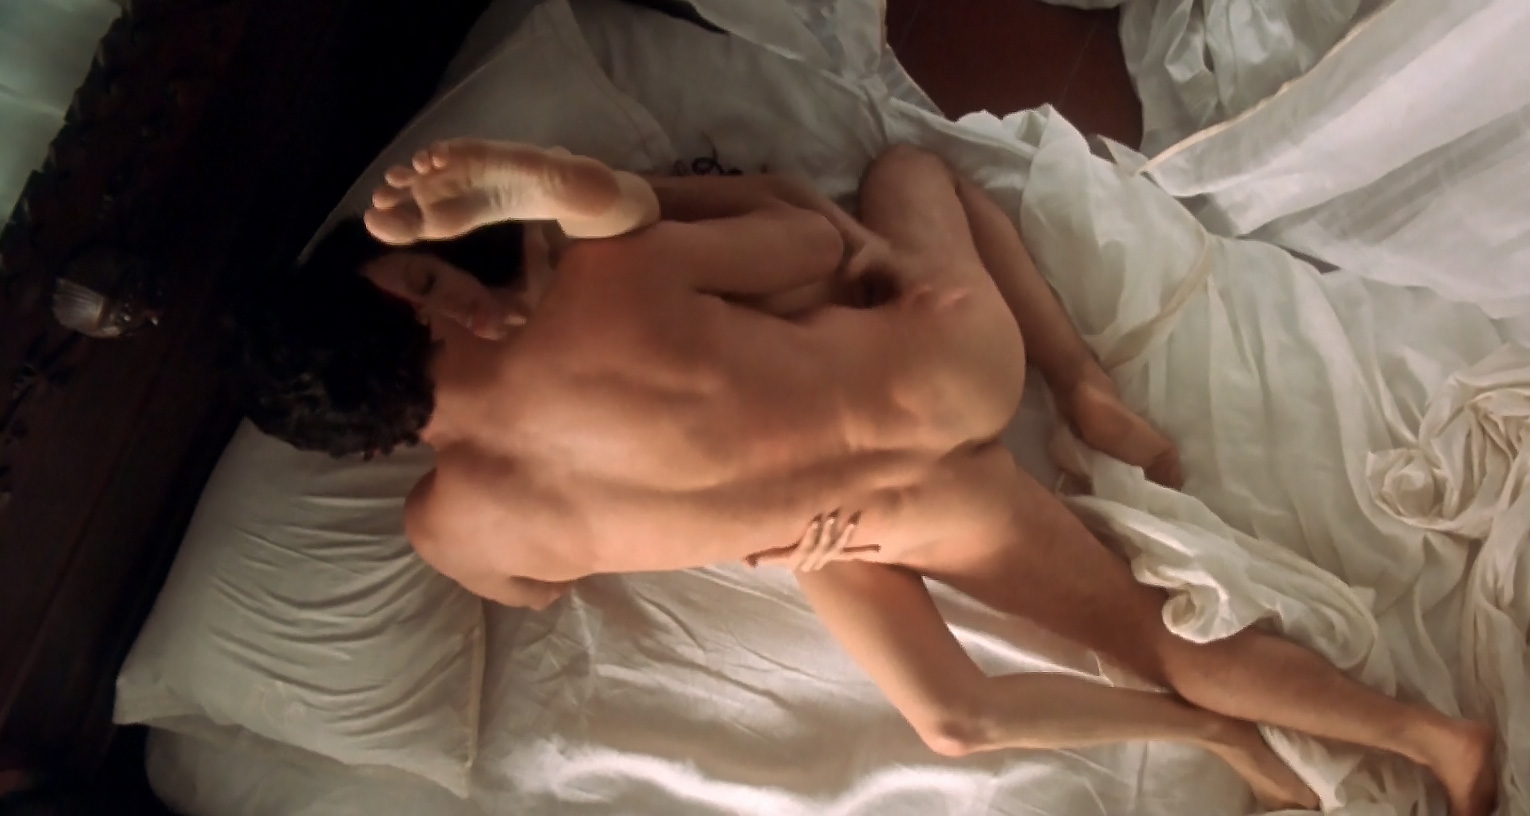 Free preview of asia carrera naked in original sin